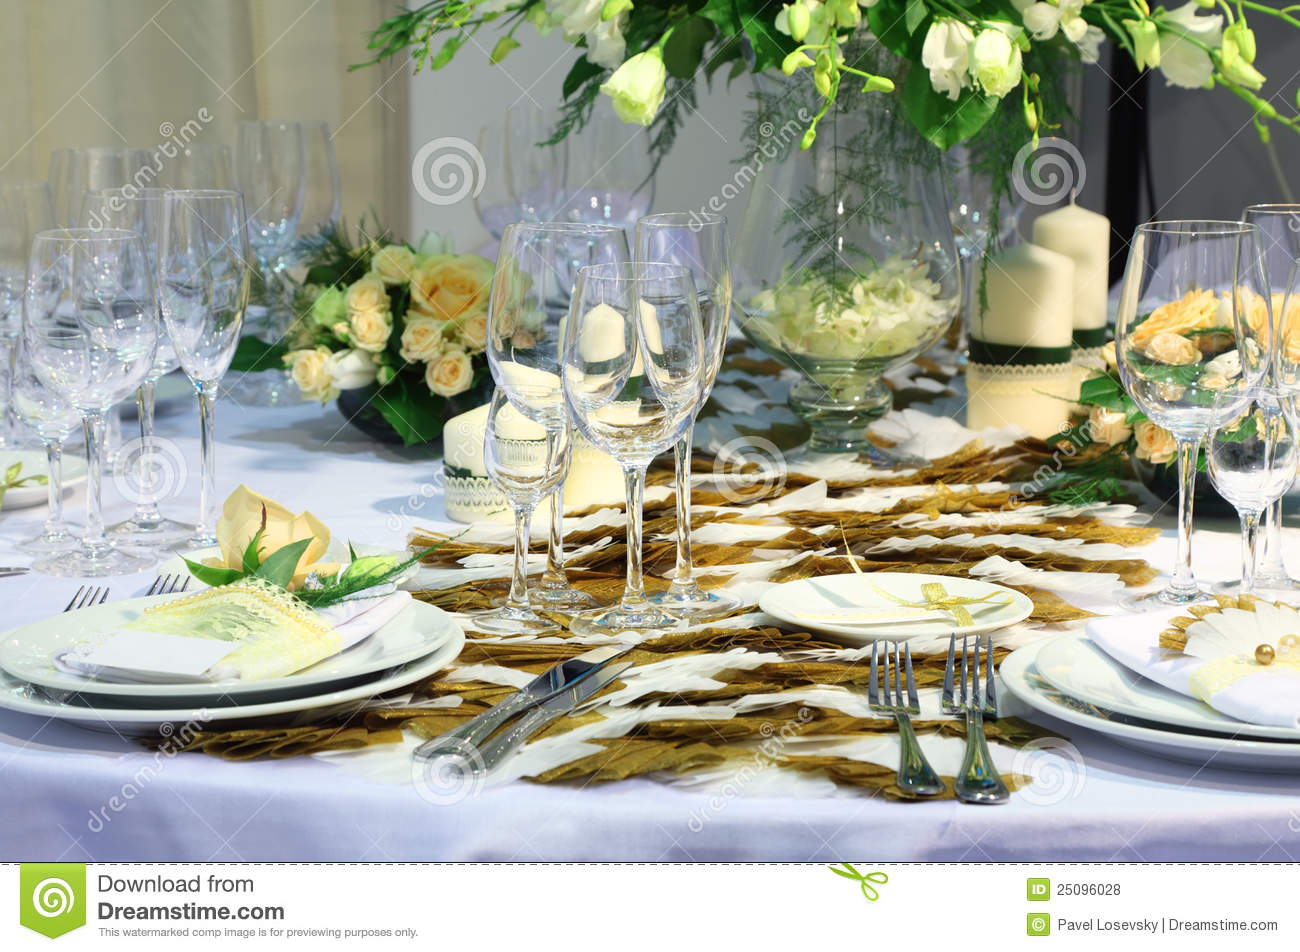 Details of beautiful table set for wedding dinner stock for How to set a beautiful dinner table